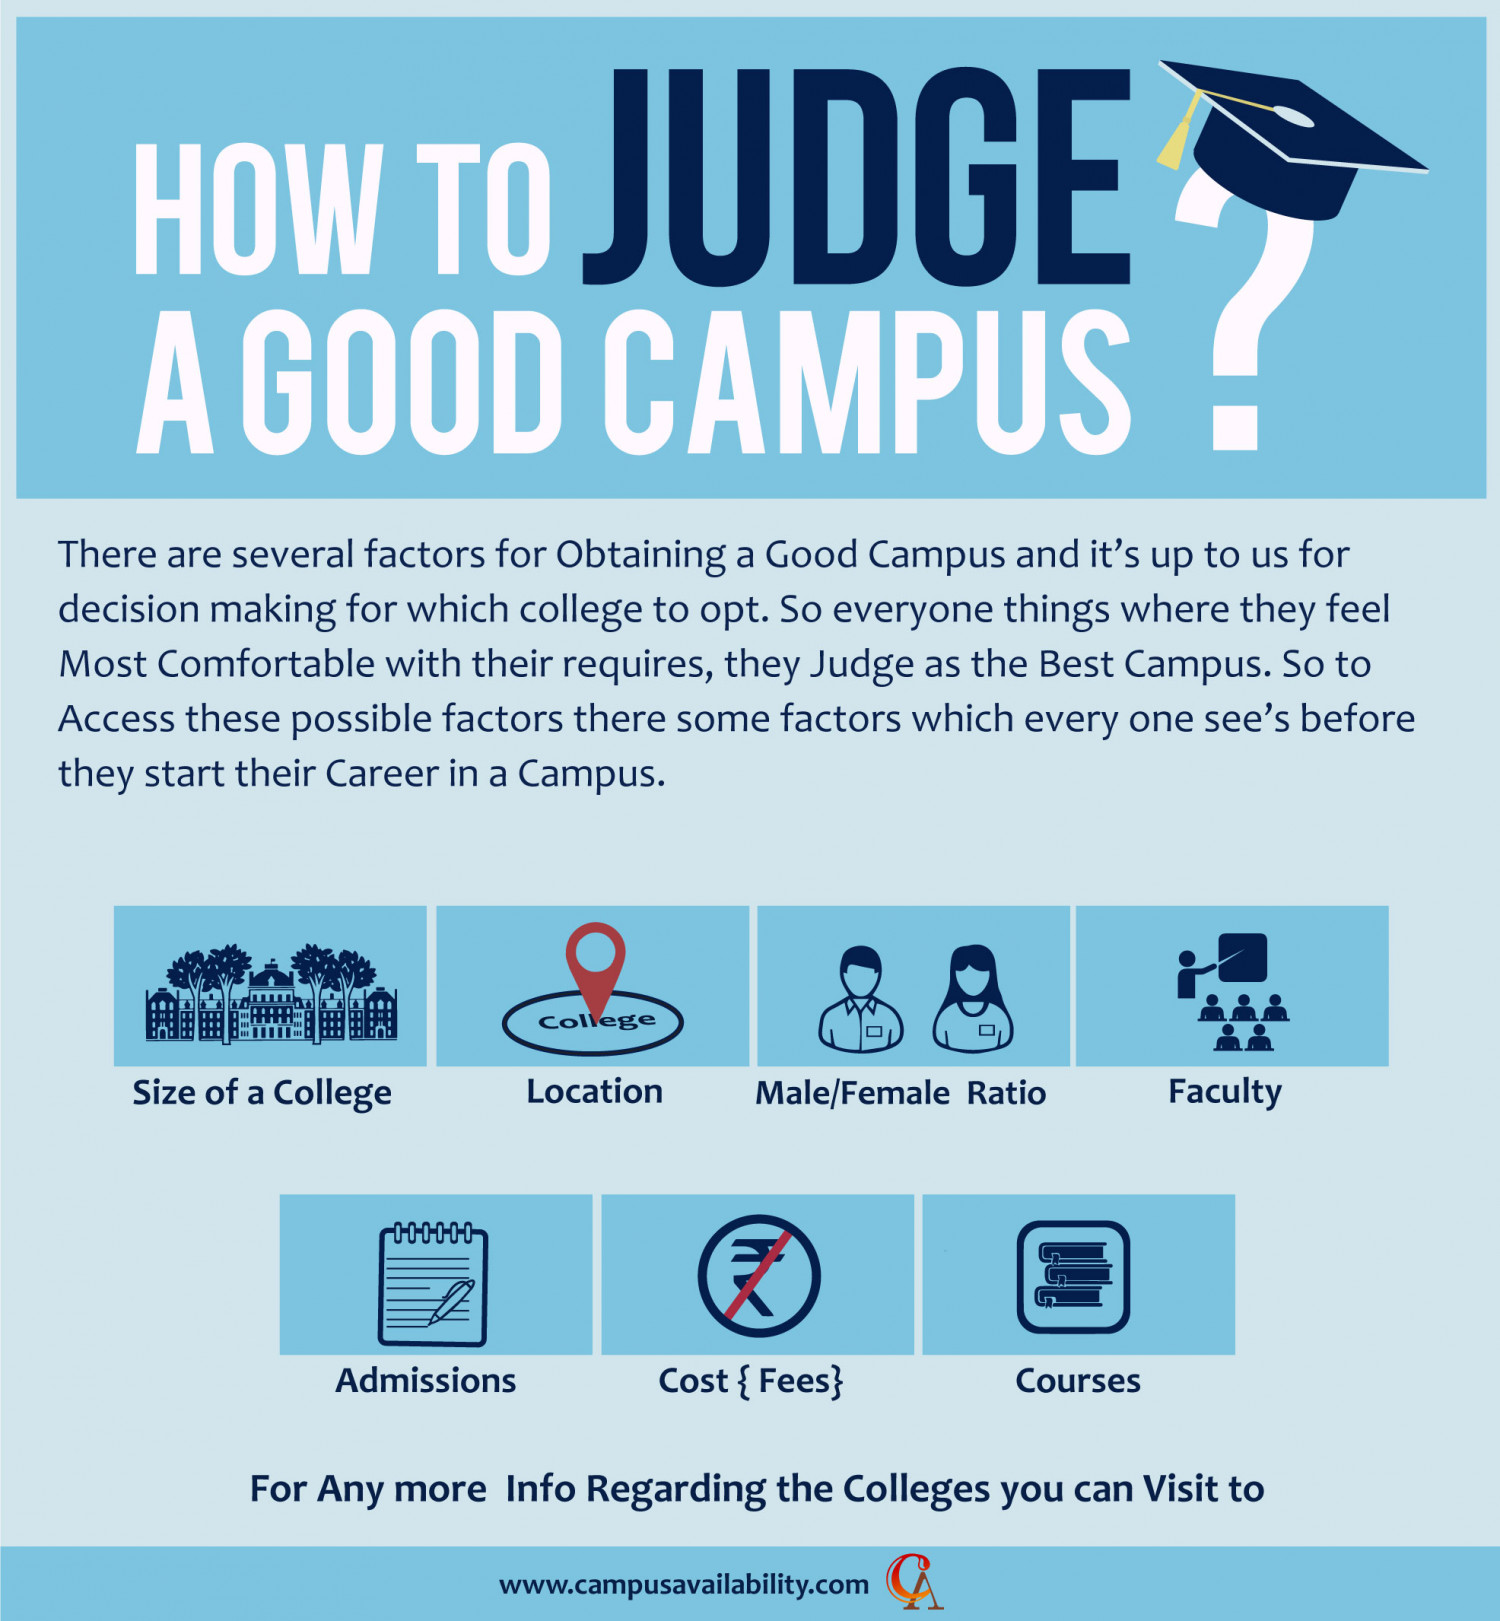 How to jude a good campus Infographic